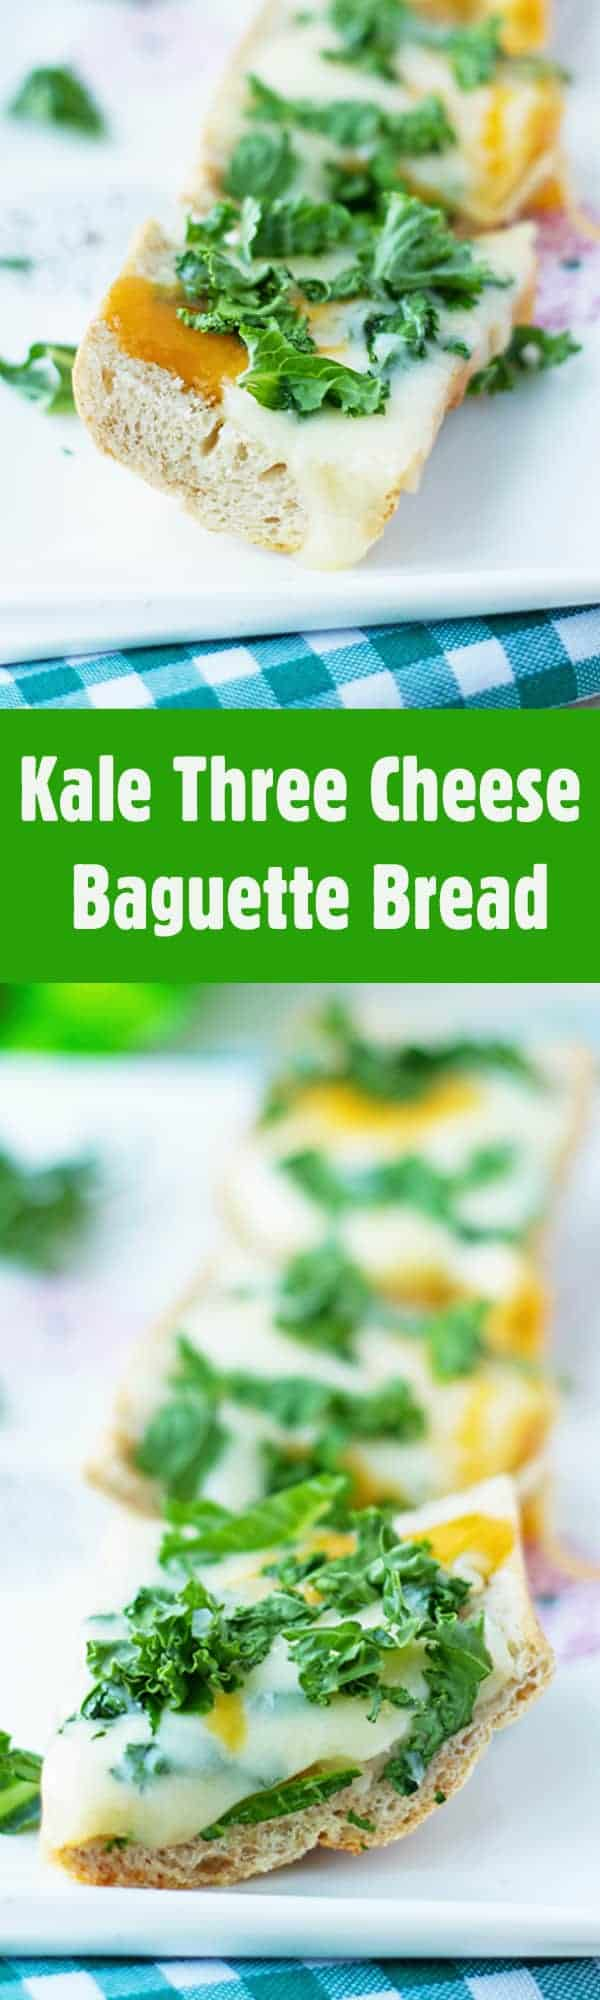 Kale Three Cheese Baguette Bread - Cheese baguette bread recipe stuffed with 3 kinds of cheese (cheddar, parmesan, mozzarella) and kale. An easy appetizer for holiday or any family and friends gathering! Let's Party! by ilonaspassion.com I @ilonaspassion